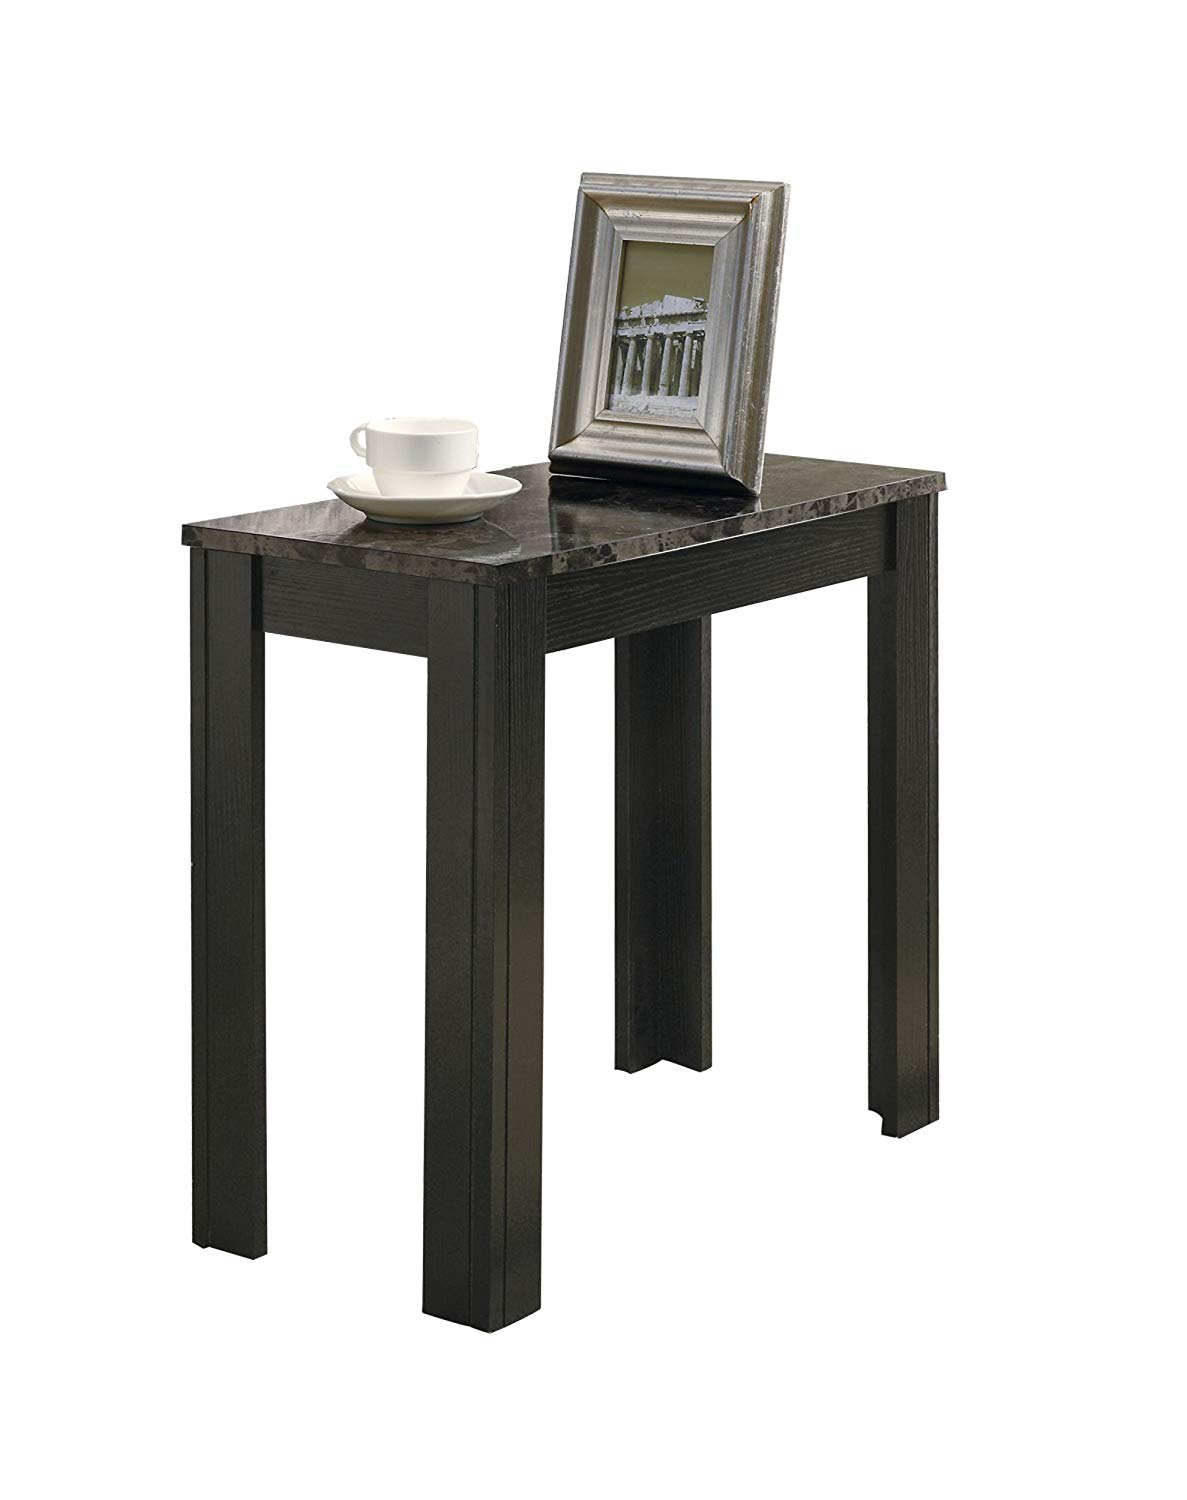 monarch specialties top accent side table cappuccino marble threshold home kitchen valley furniture used end tables purple bedside lamps pier outdoor pillows mainstays coffee